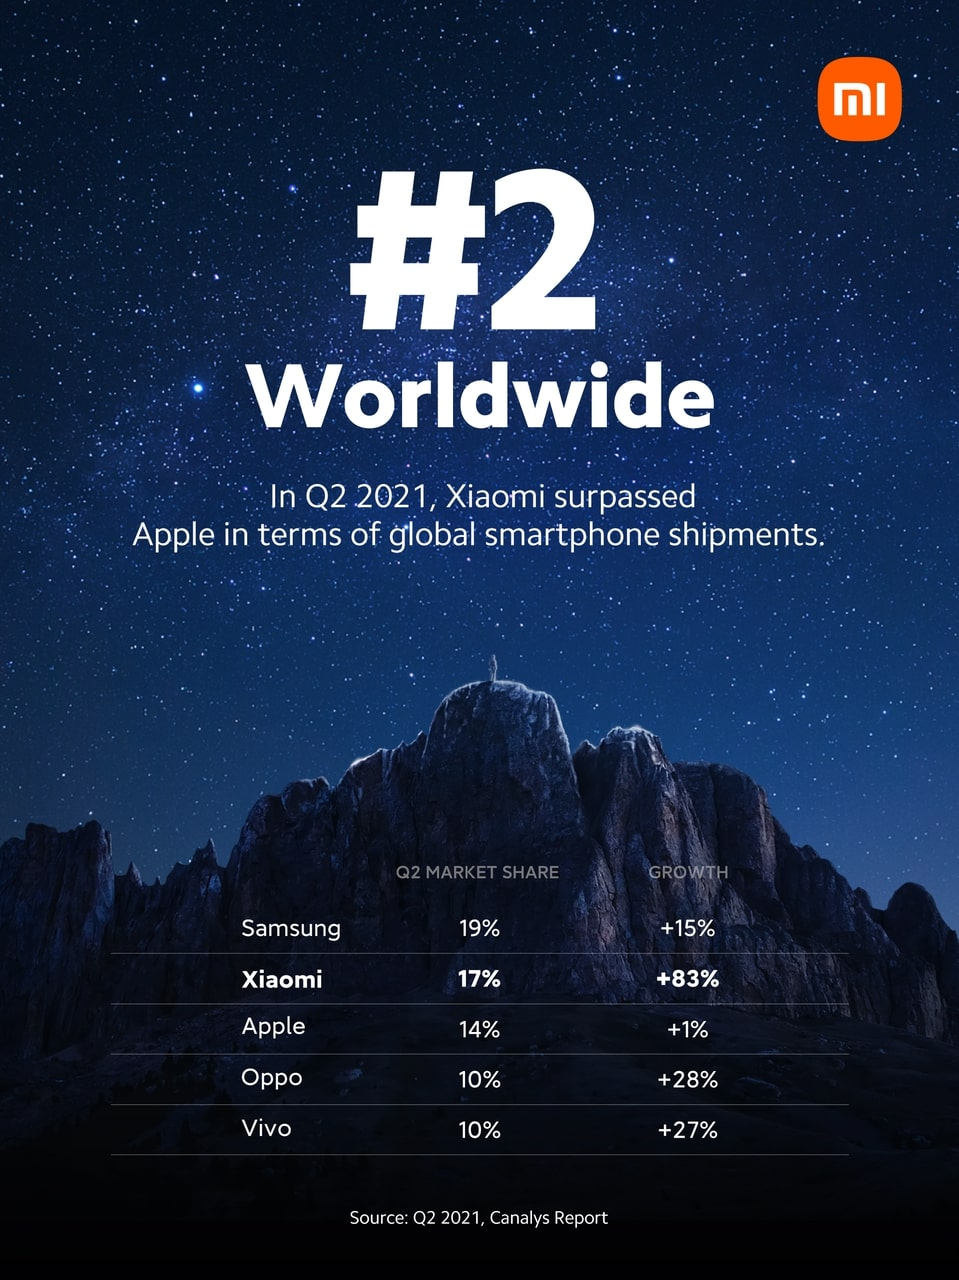 XIAOMI TAKES THE NO.2 SPOT IN GLOBAL SMARTPHONE MARKET FOR THE FIRST TIME